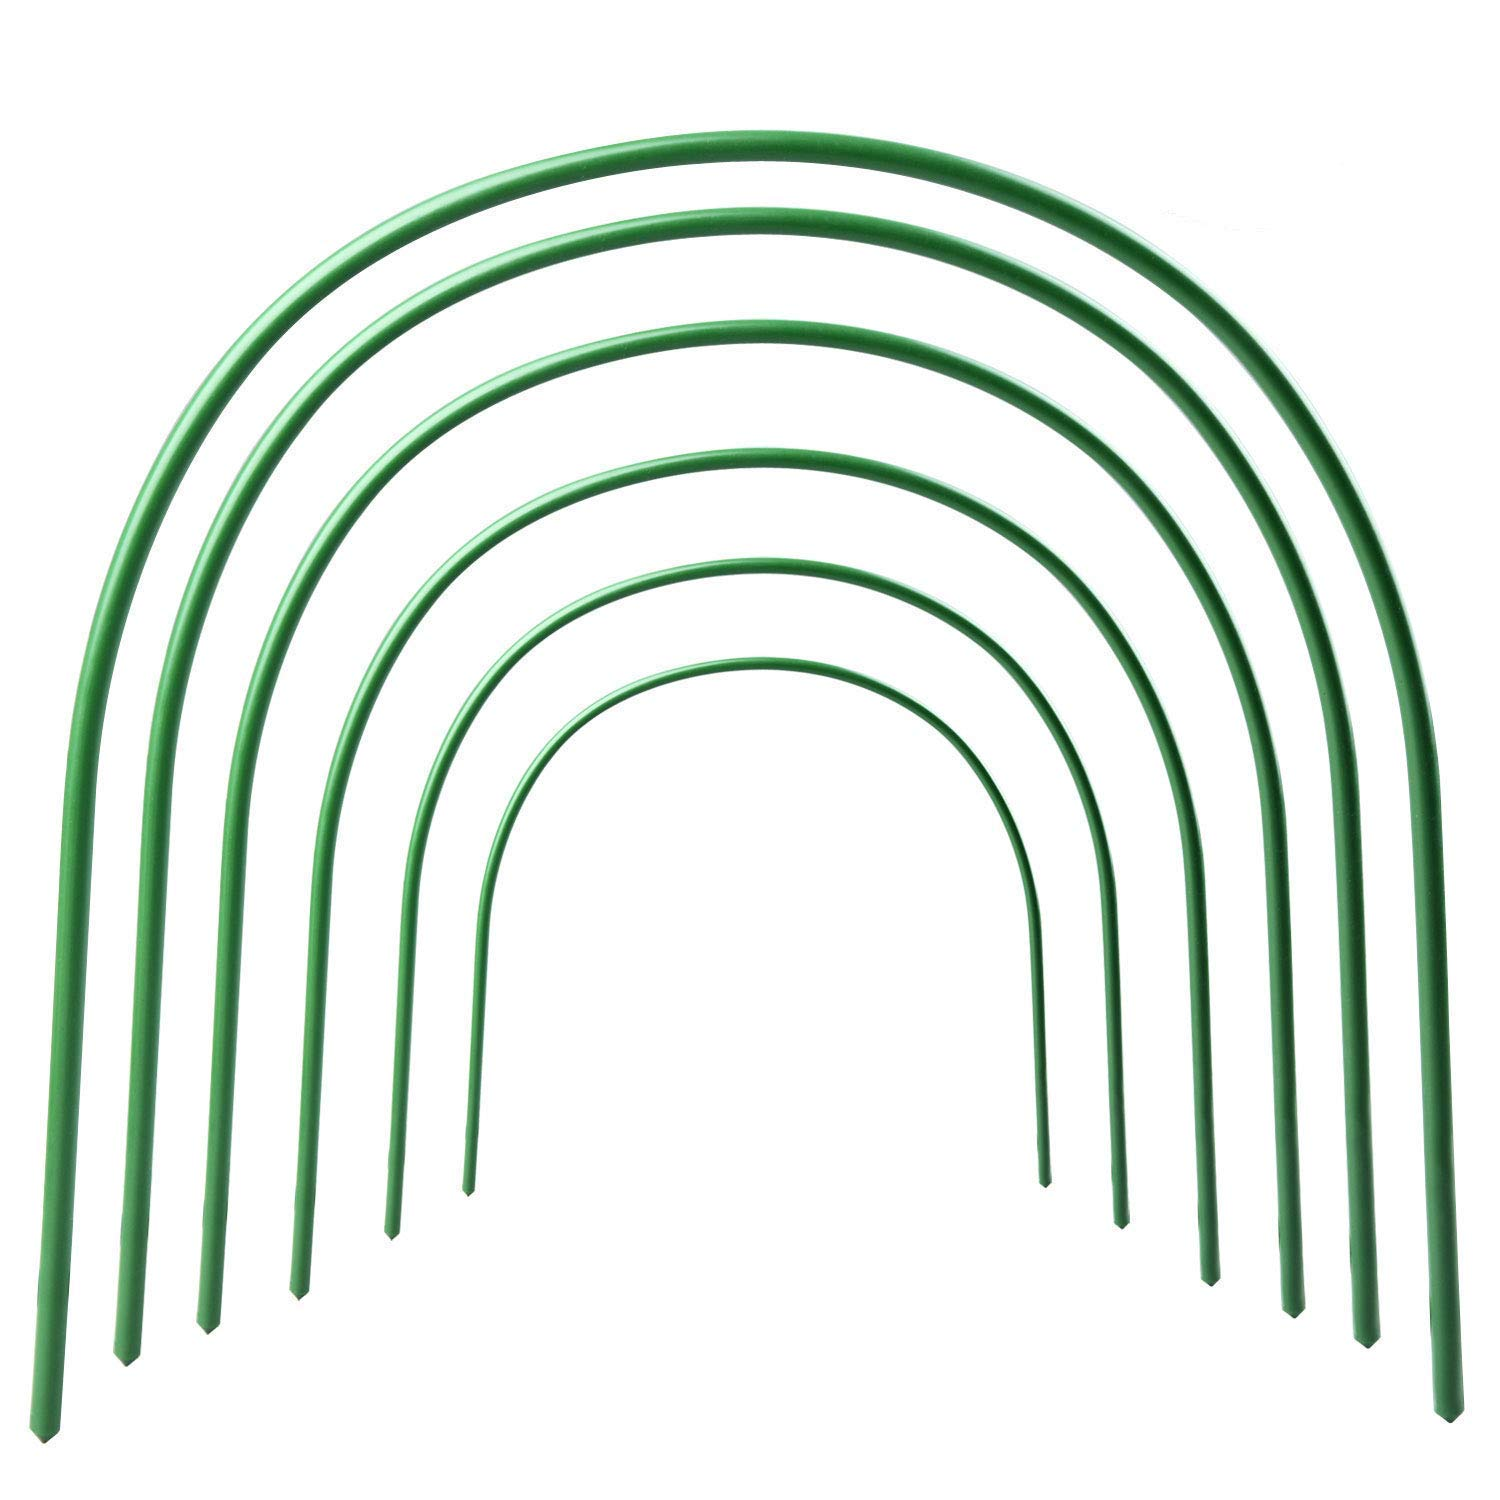 B&P Portable Garden Hoops Hoop Greenhouse Plant Hoops, Rust-Free Grow Tunnel 4ft Long Steel with Plastic Coated Hoops,Greenhouse Support Hoops for Garden Hoop,6Pack (Arch Size: 18.5'' H x 19.6'' W) by B&P (Image #1)